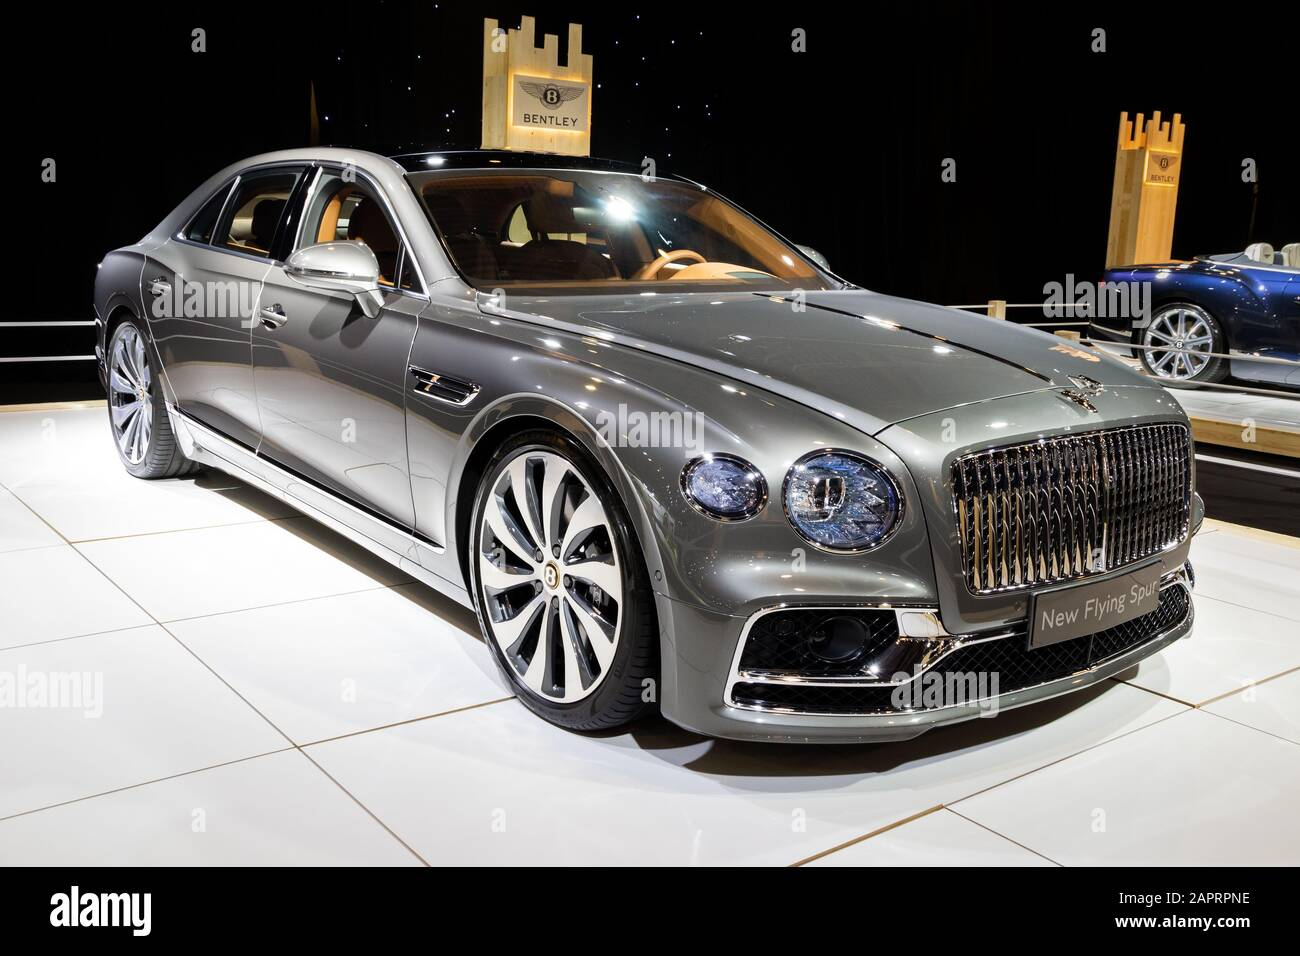 Brussels Jan 9 2020 New Bentley Flying Spur Luxury Car Model Showcased At The Brussels Autosalon 2020 Motor Show Stock Photo Alamy